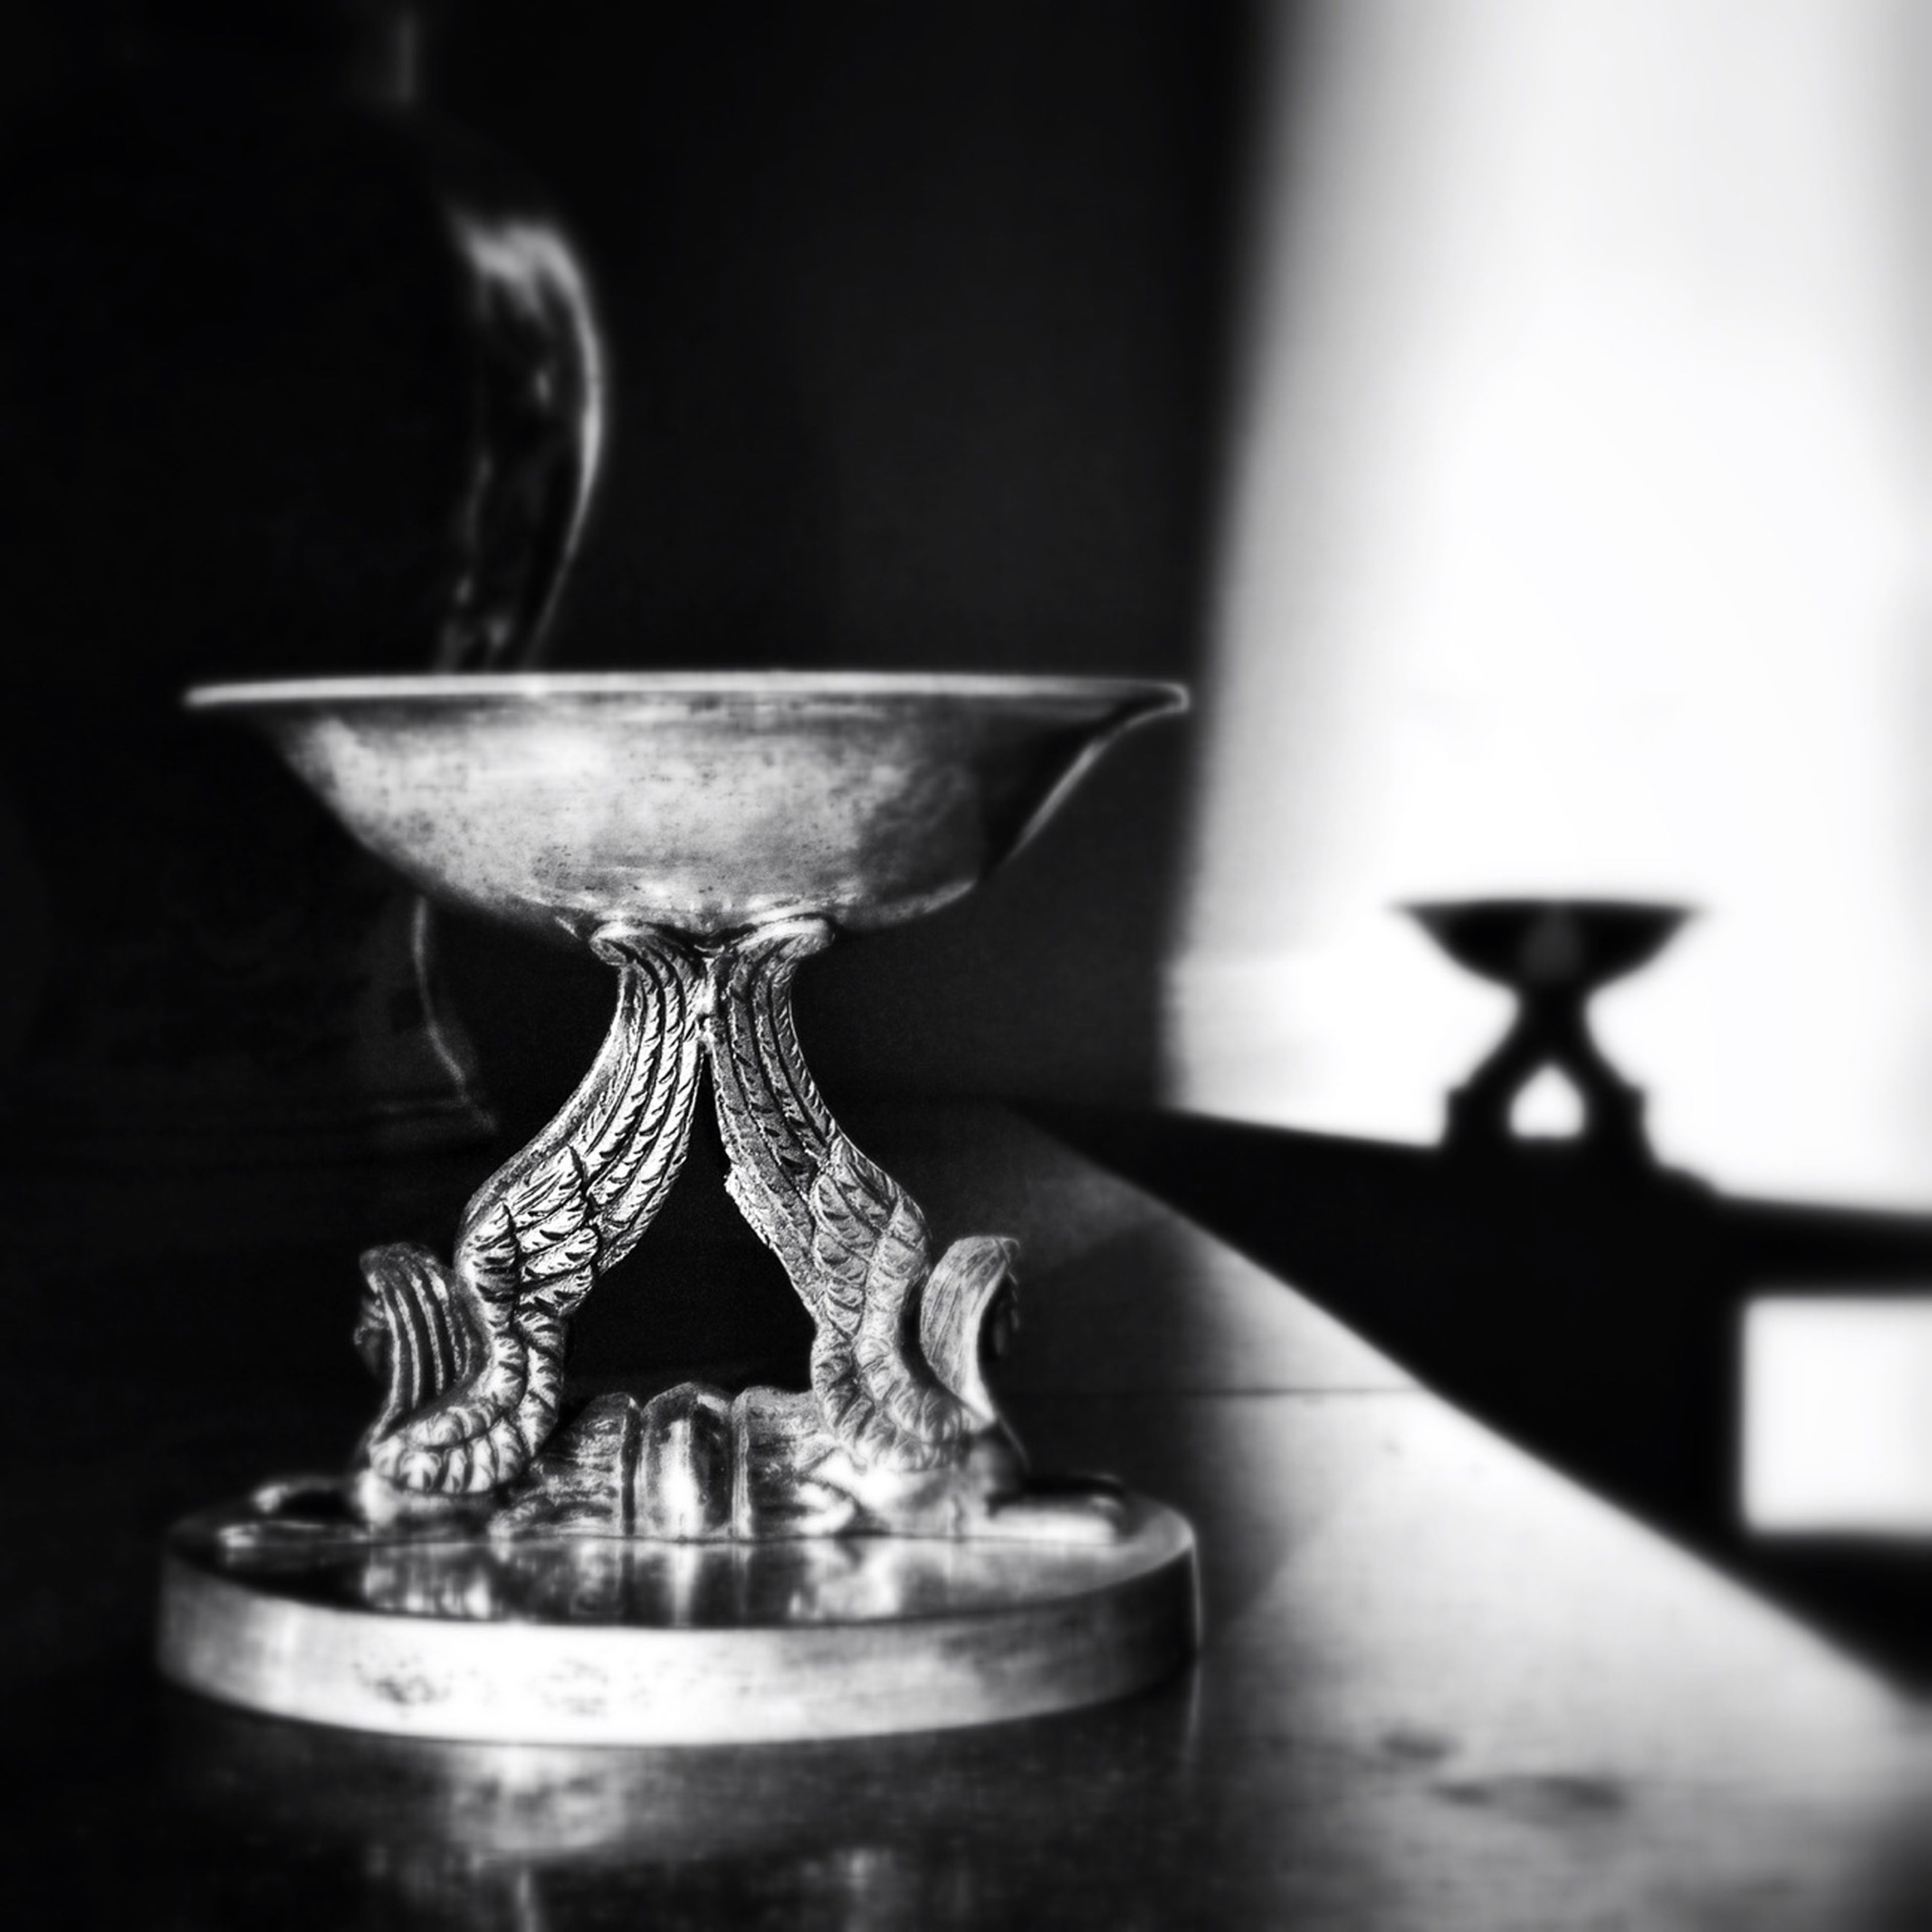 indoors, still life, table, close-up, focus on foreground, candle, glass - material, illuminated, selective focus, lighting equipment, single object, home interior, no people, lit, religion, decoration, wineglass, flame, transparent, glowing